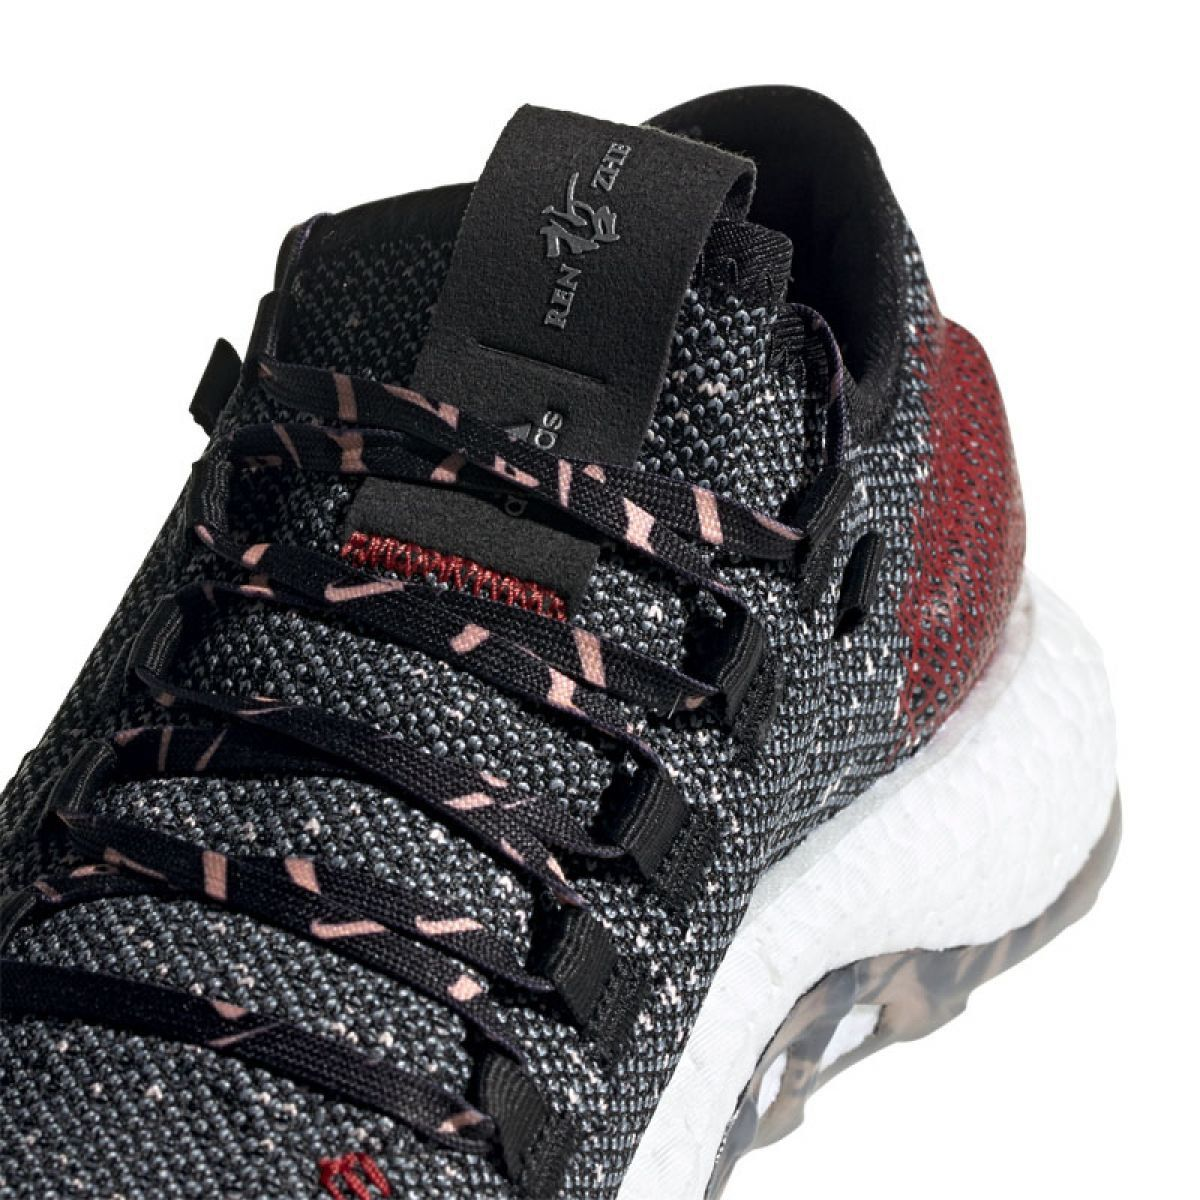 Buty Adidas Pureboost M B37777 Szare Adidas Pure Boost Shoes Adidas Running Shoes